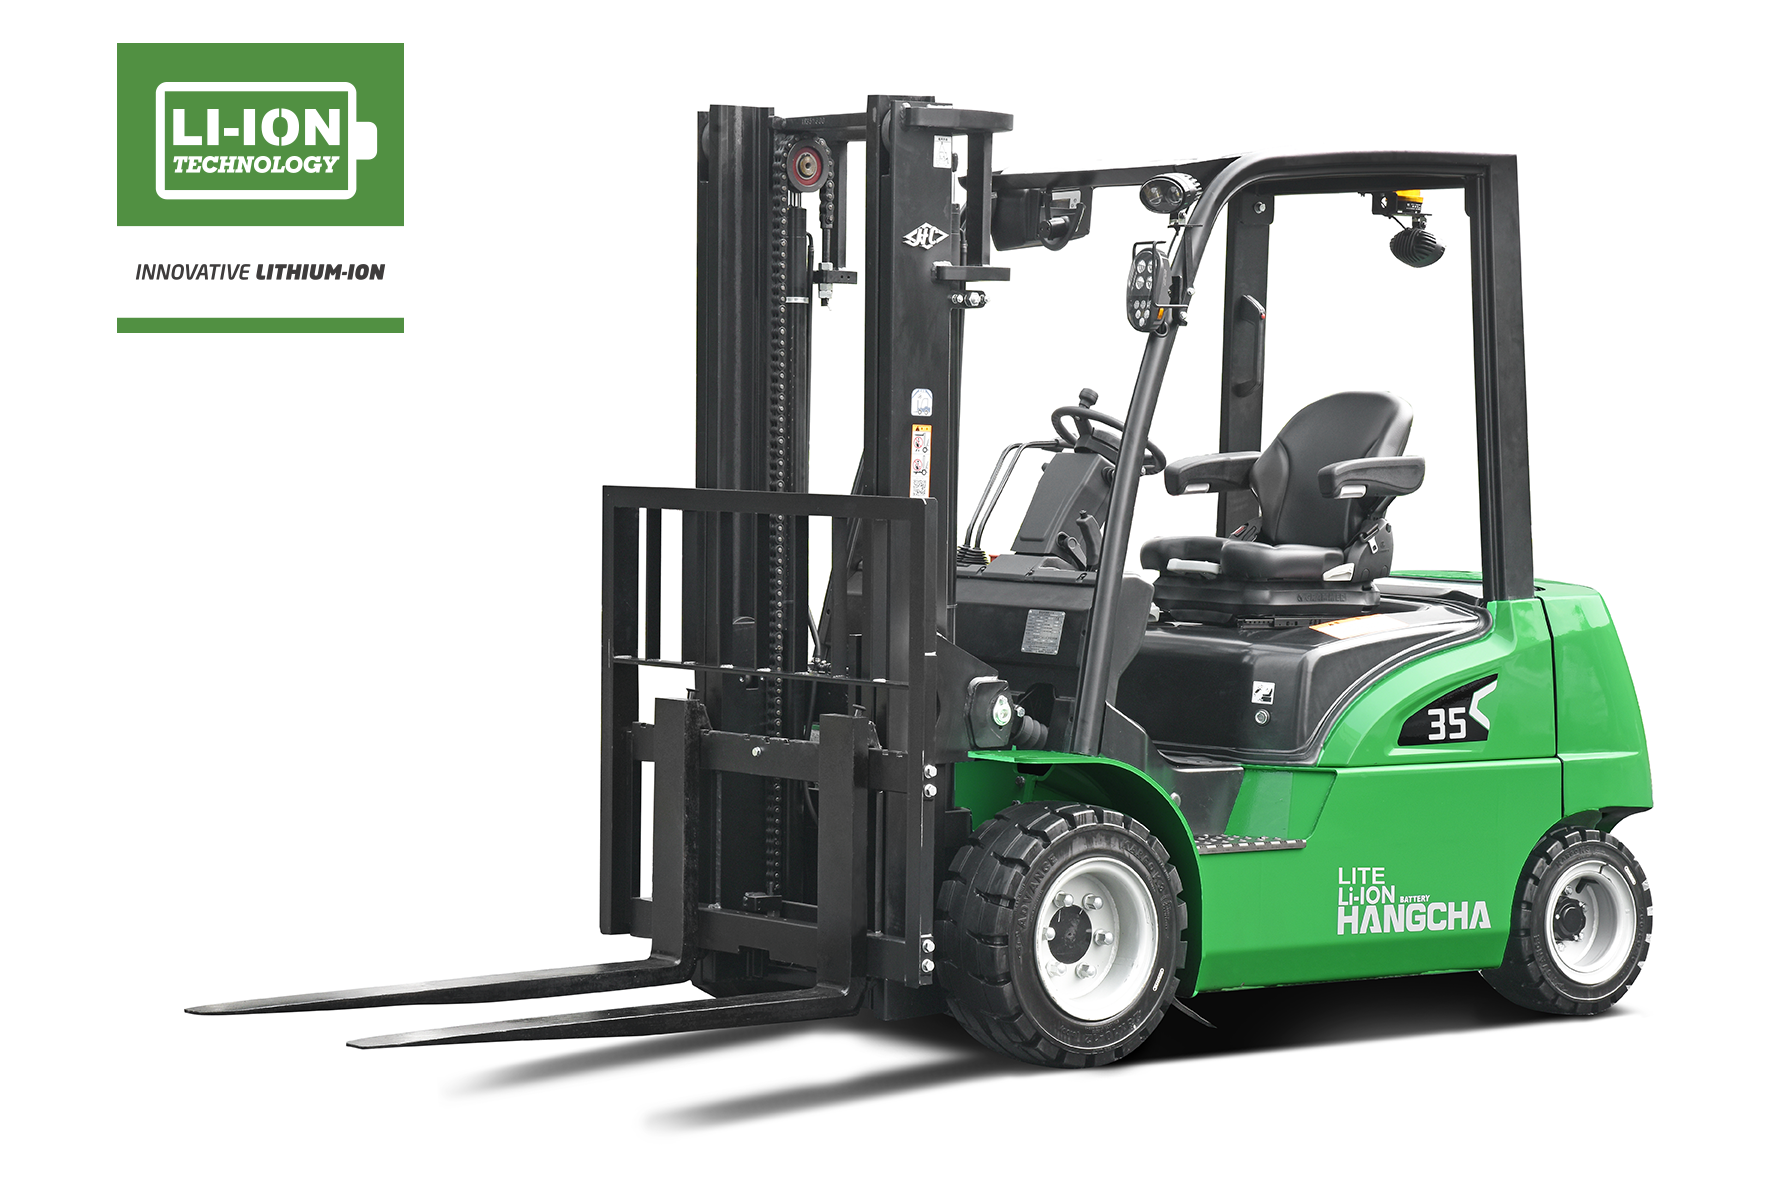 Electric Lithium-ion Lite Pneumatic Tire Forklift 4,000-7,000lbs